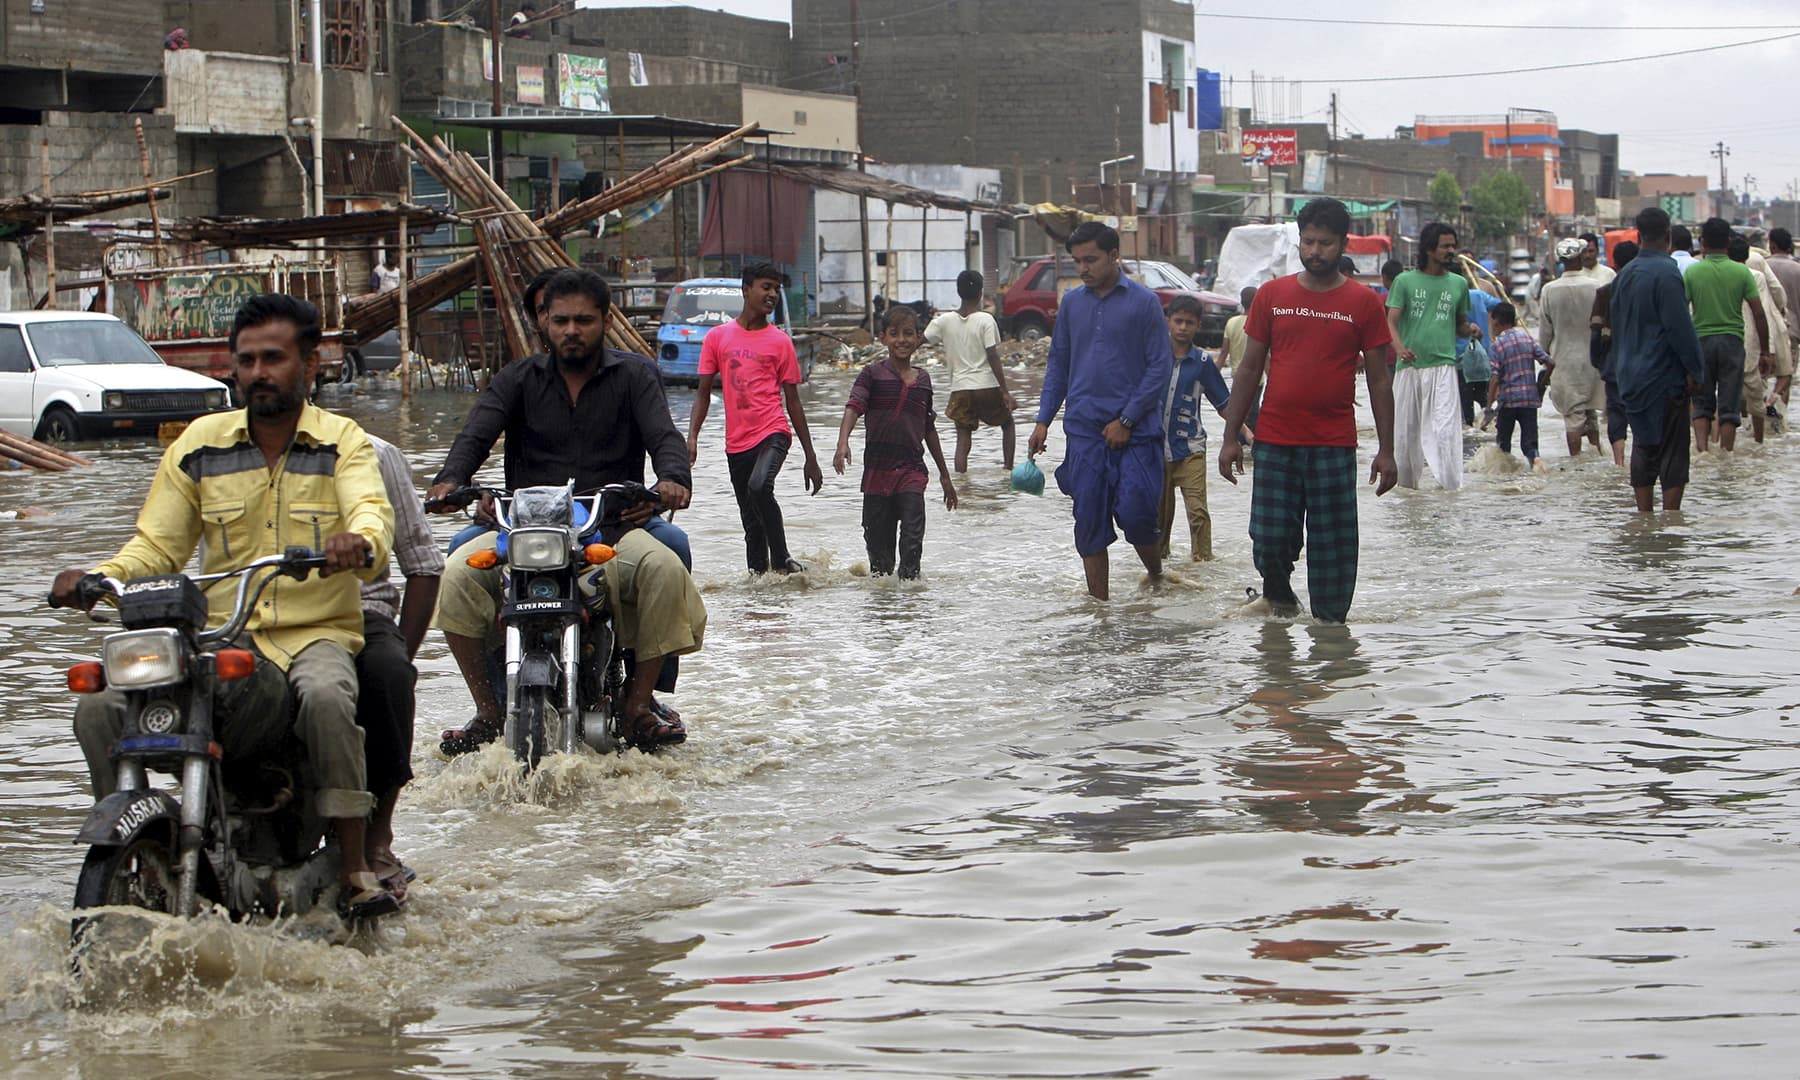 People wade through a flooded street in Karachi on Tuesday. — AP